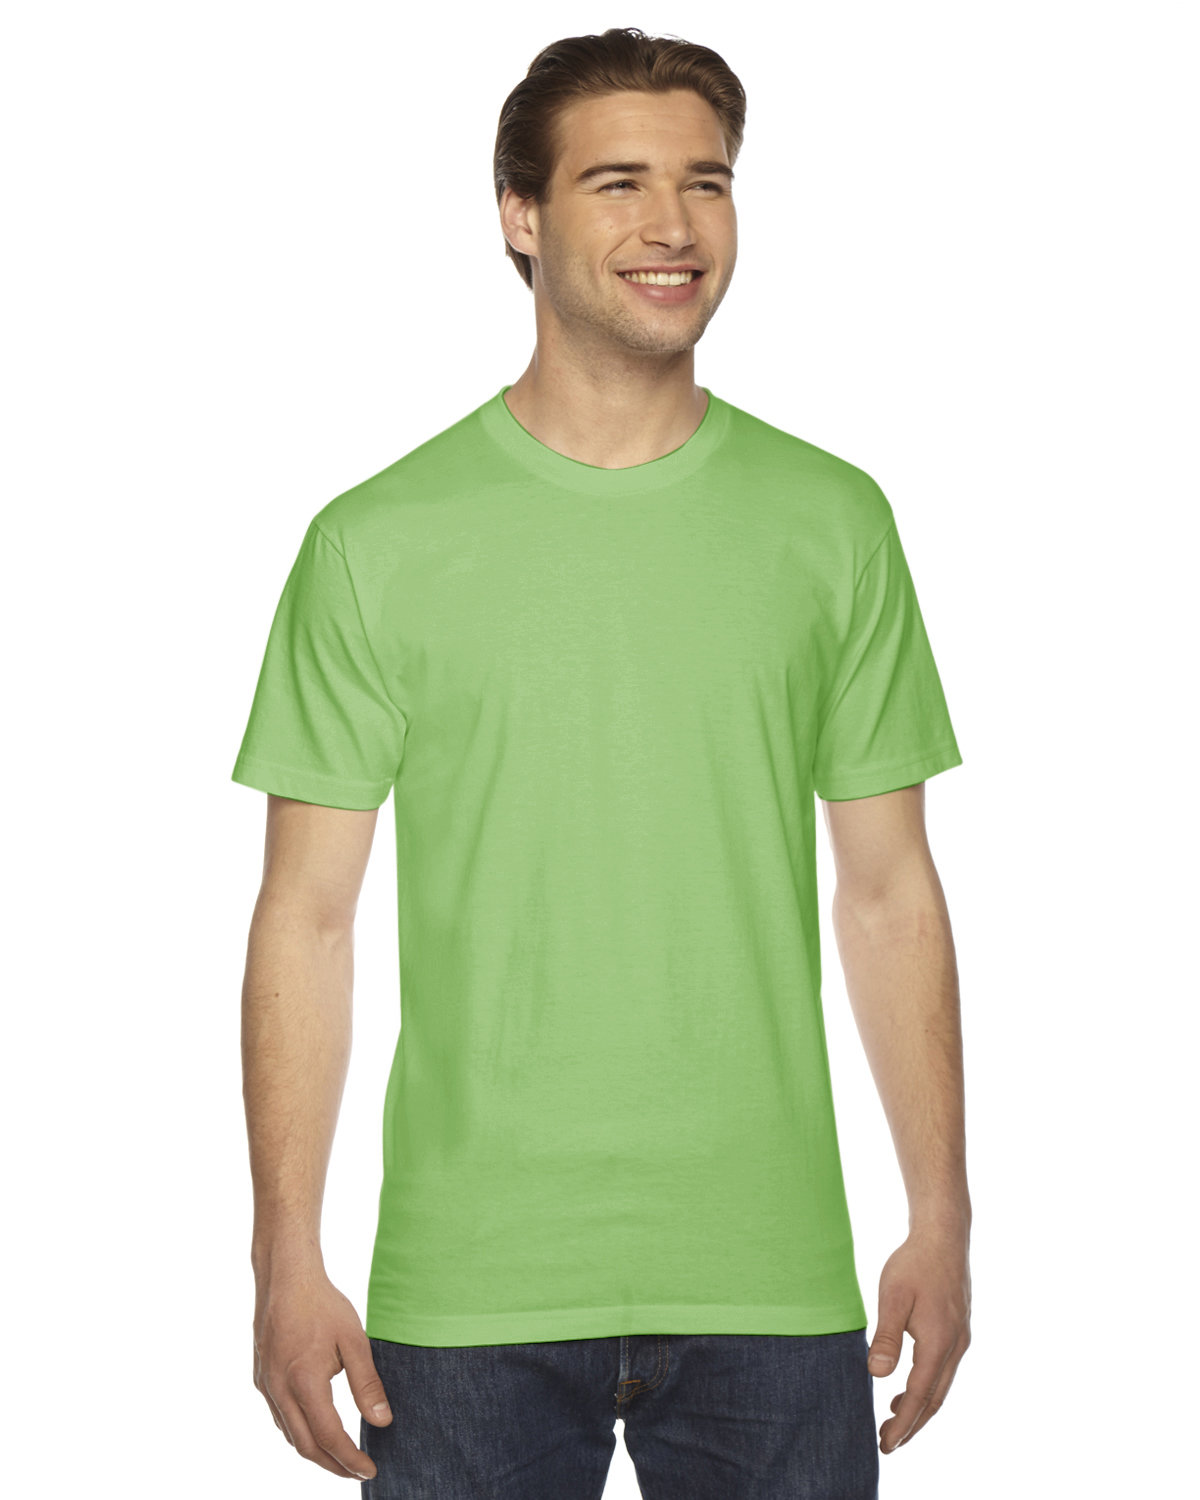 American Apparel Unisex Fine Jersey USA Made T-Shirt GRASS